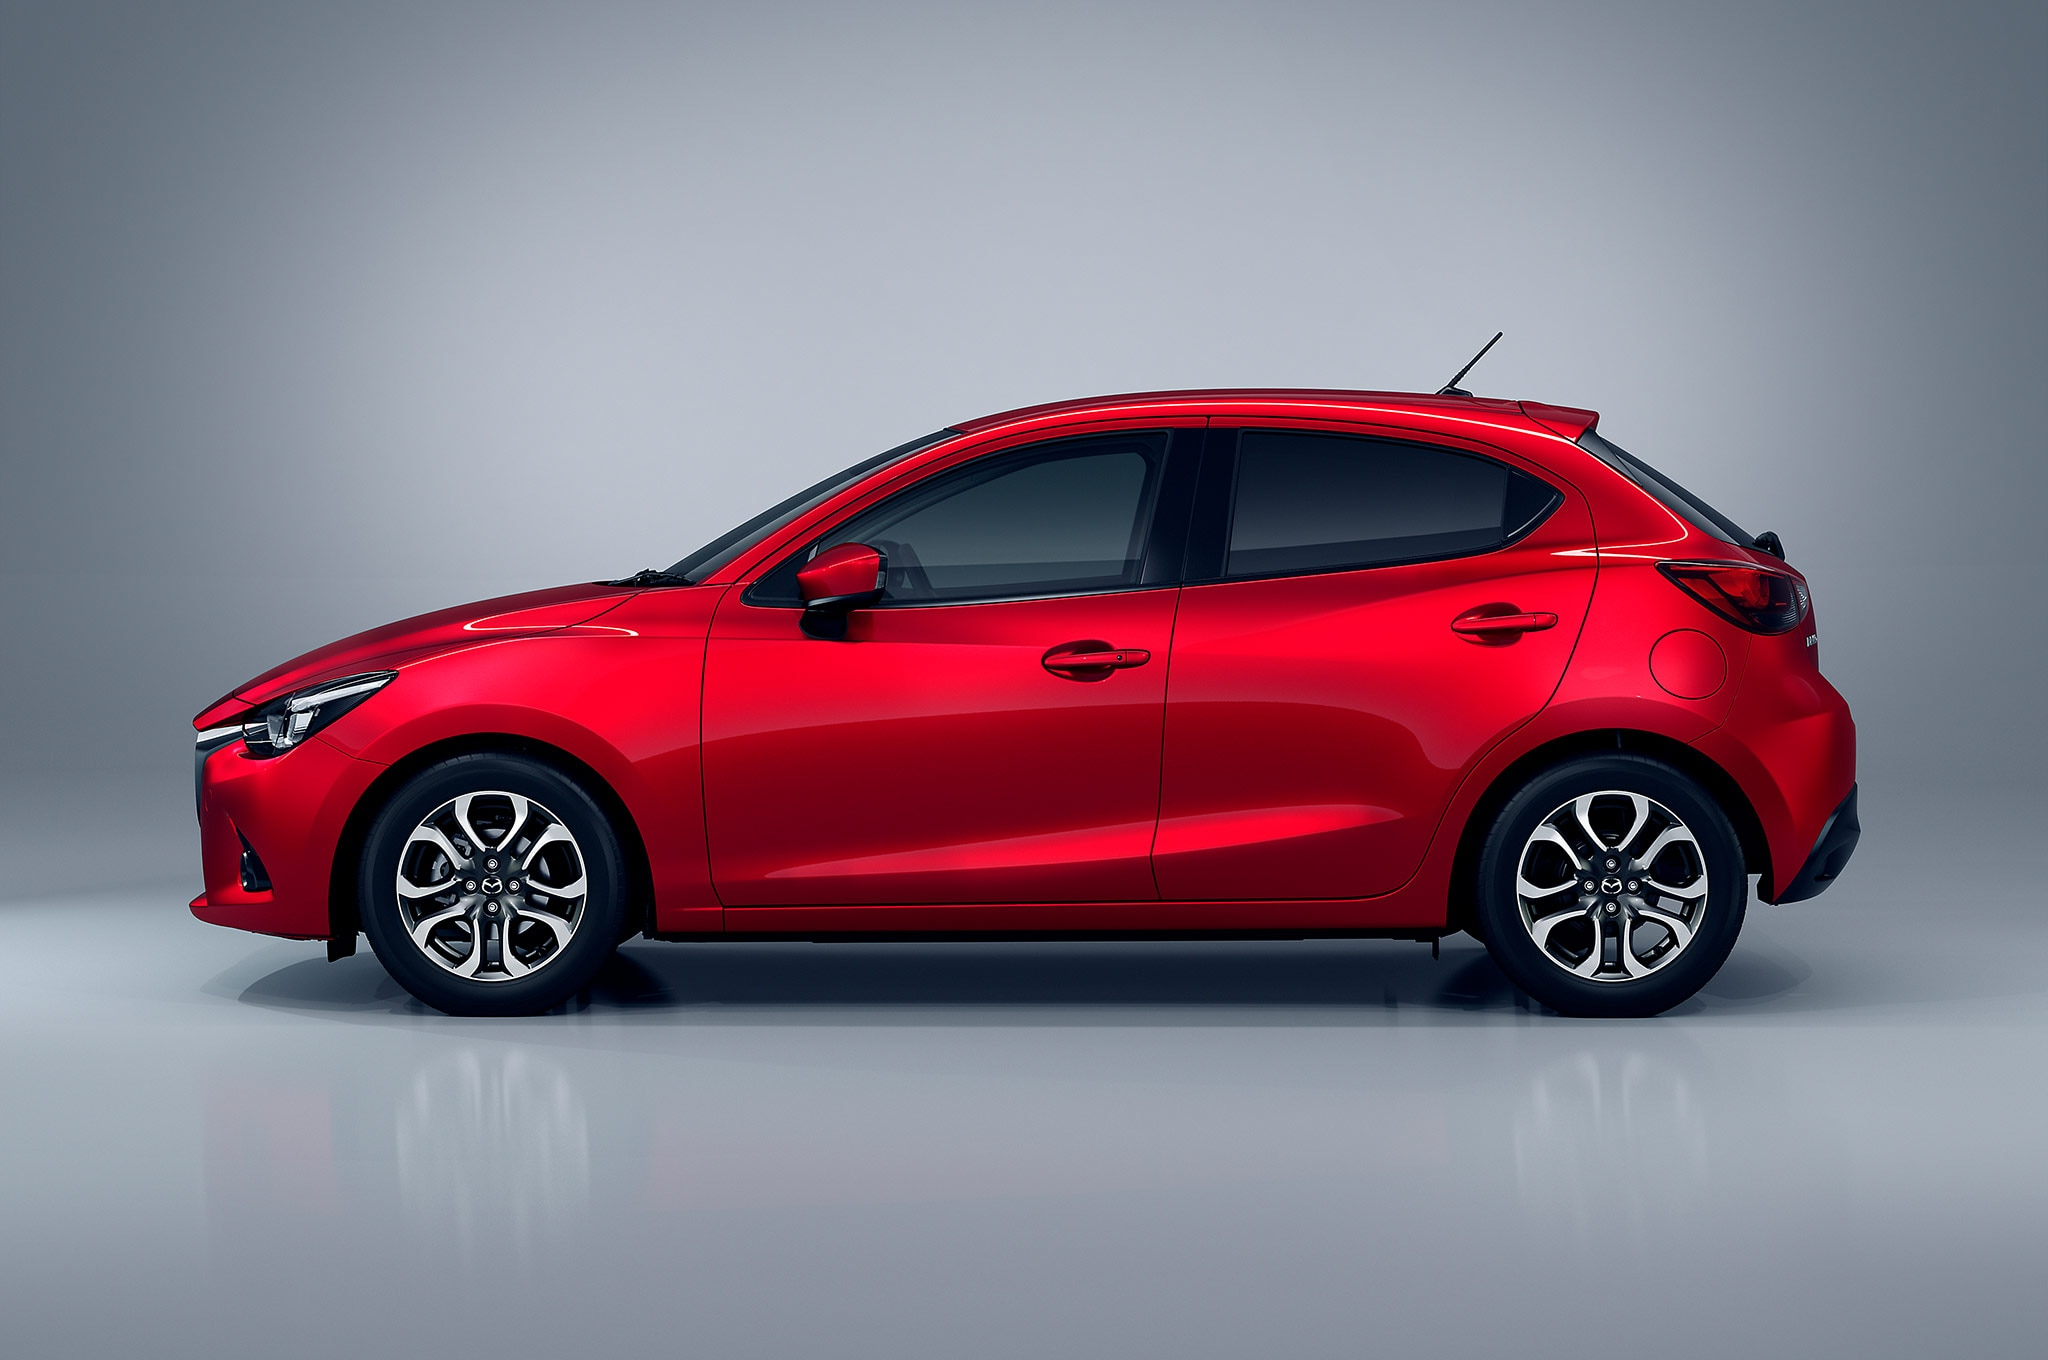 2016 Mazda 2 Revealed As Production Starts In Japan